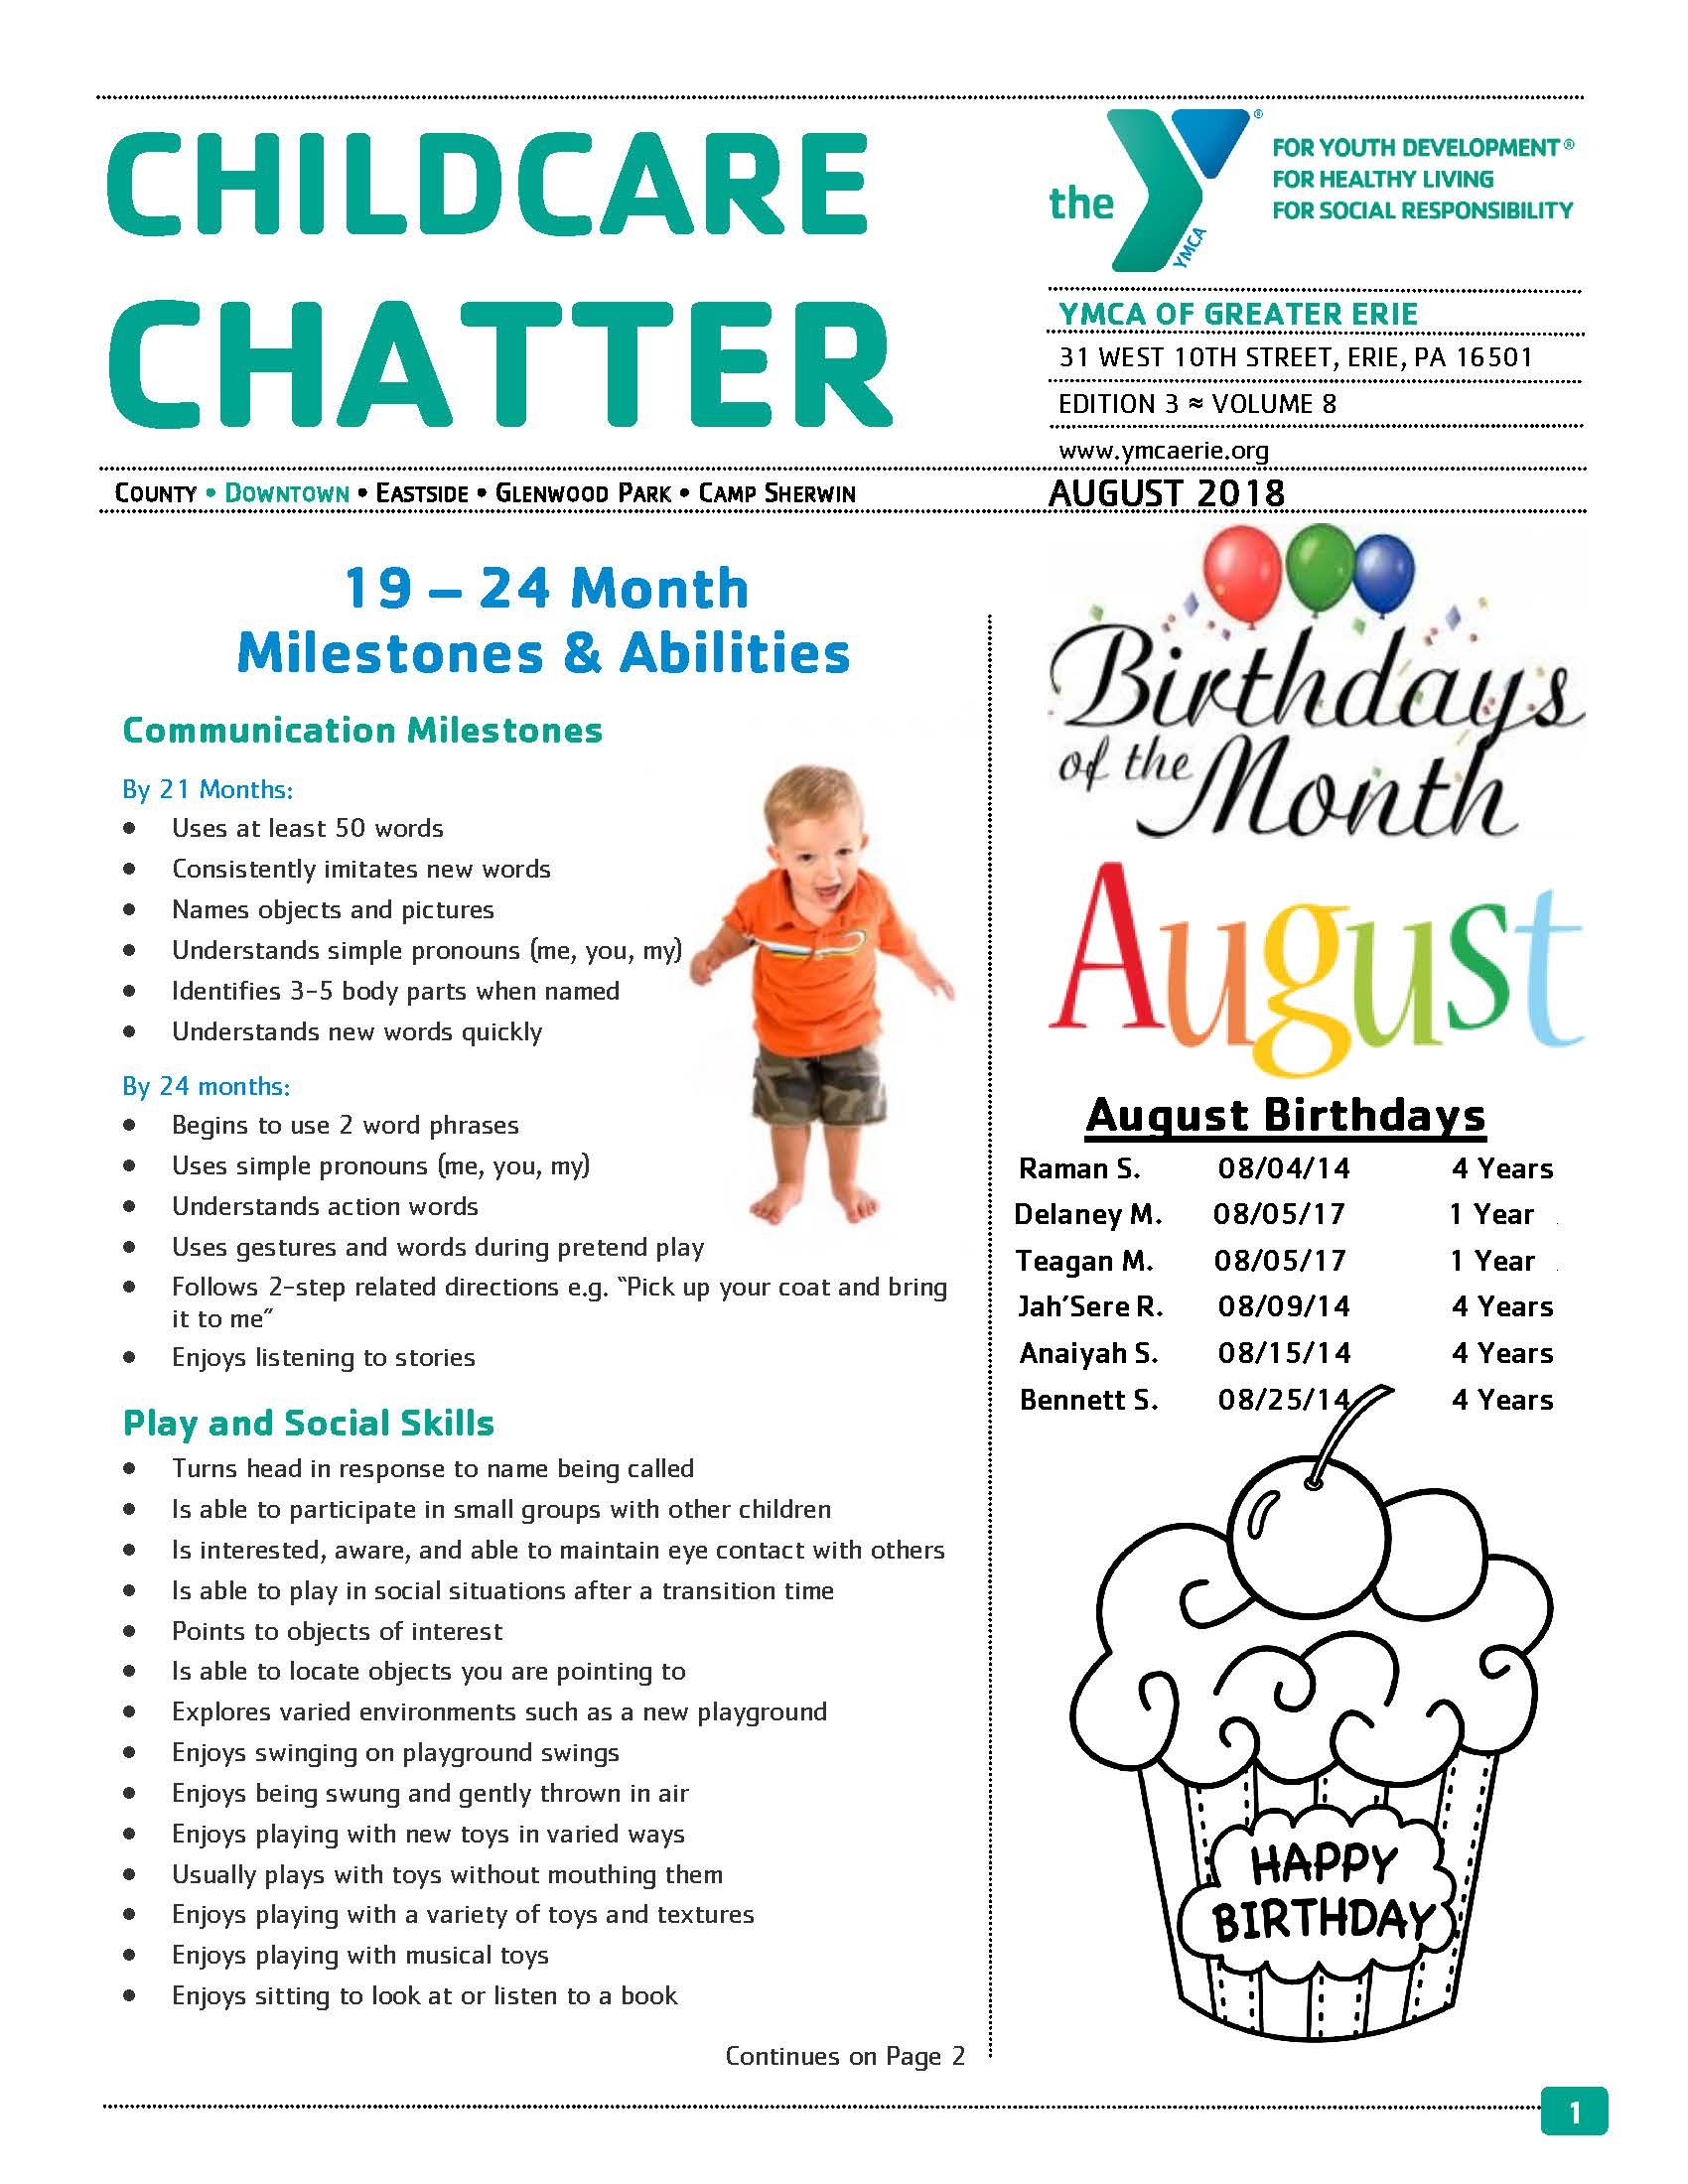 August Child Care Newsletter